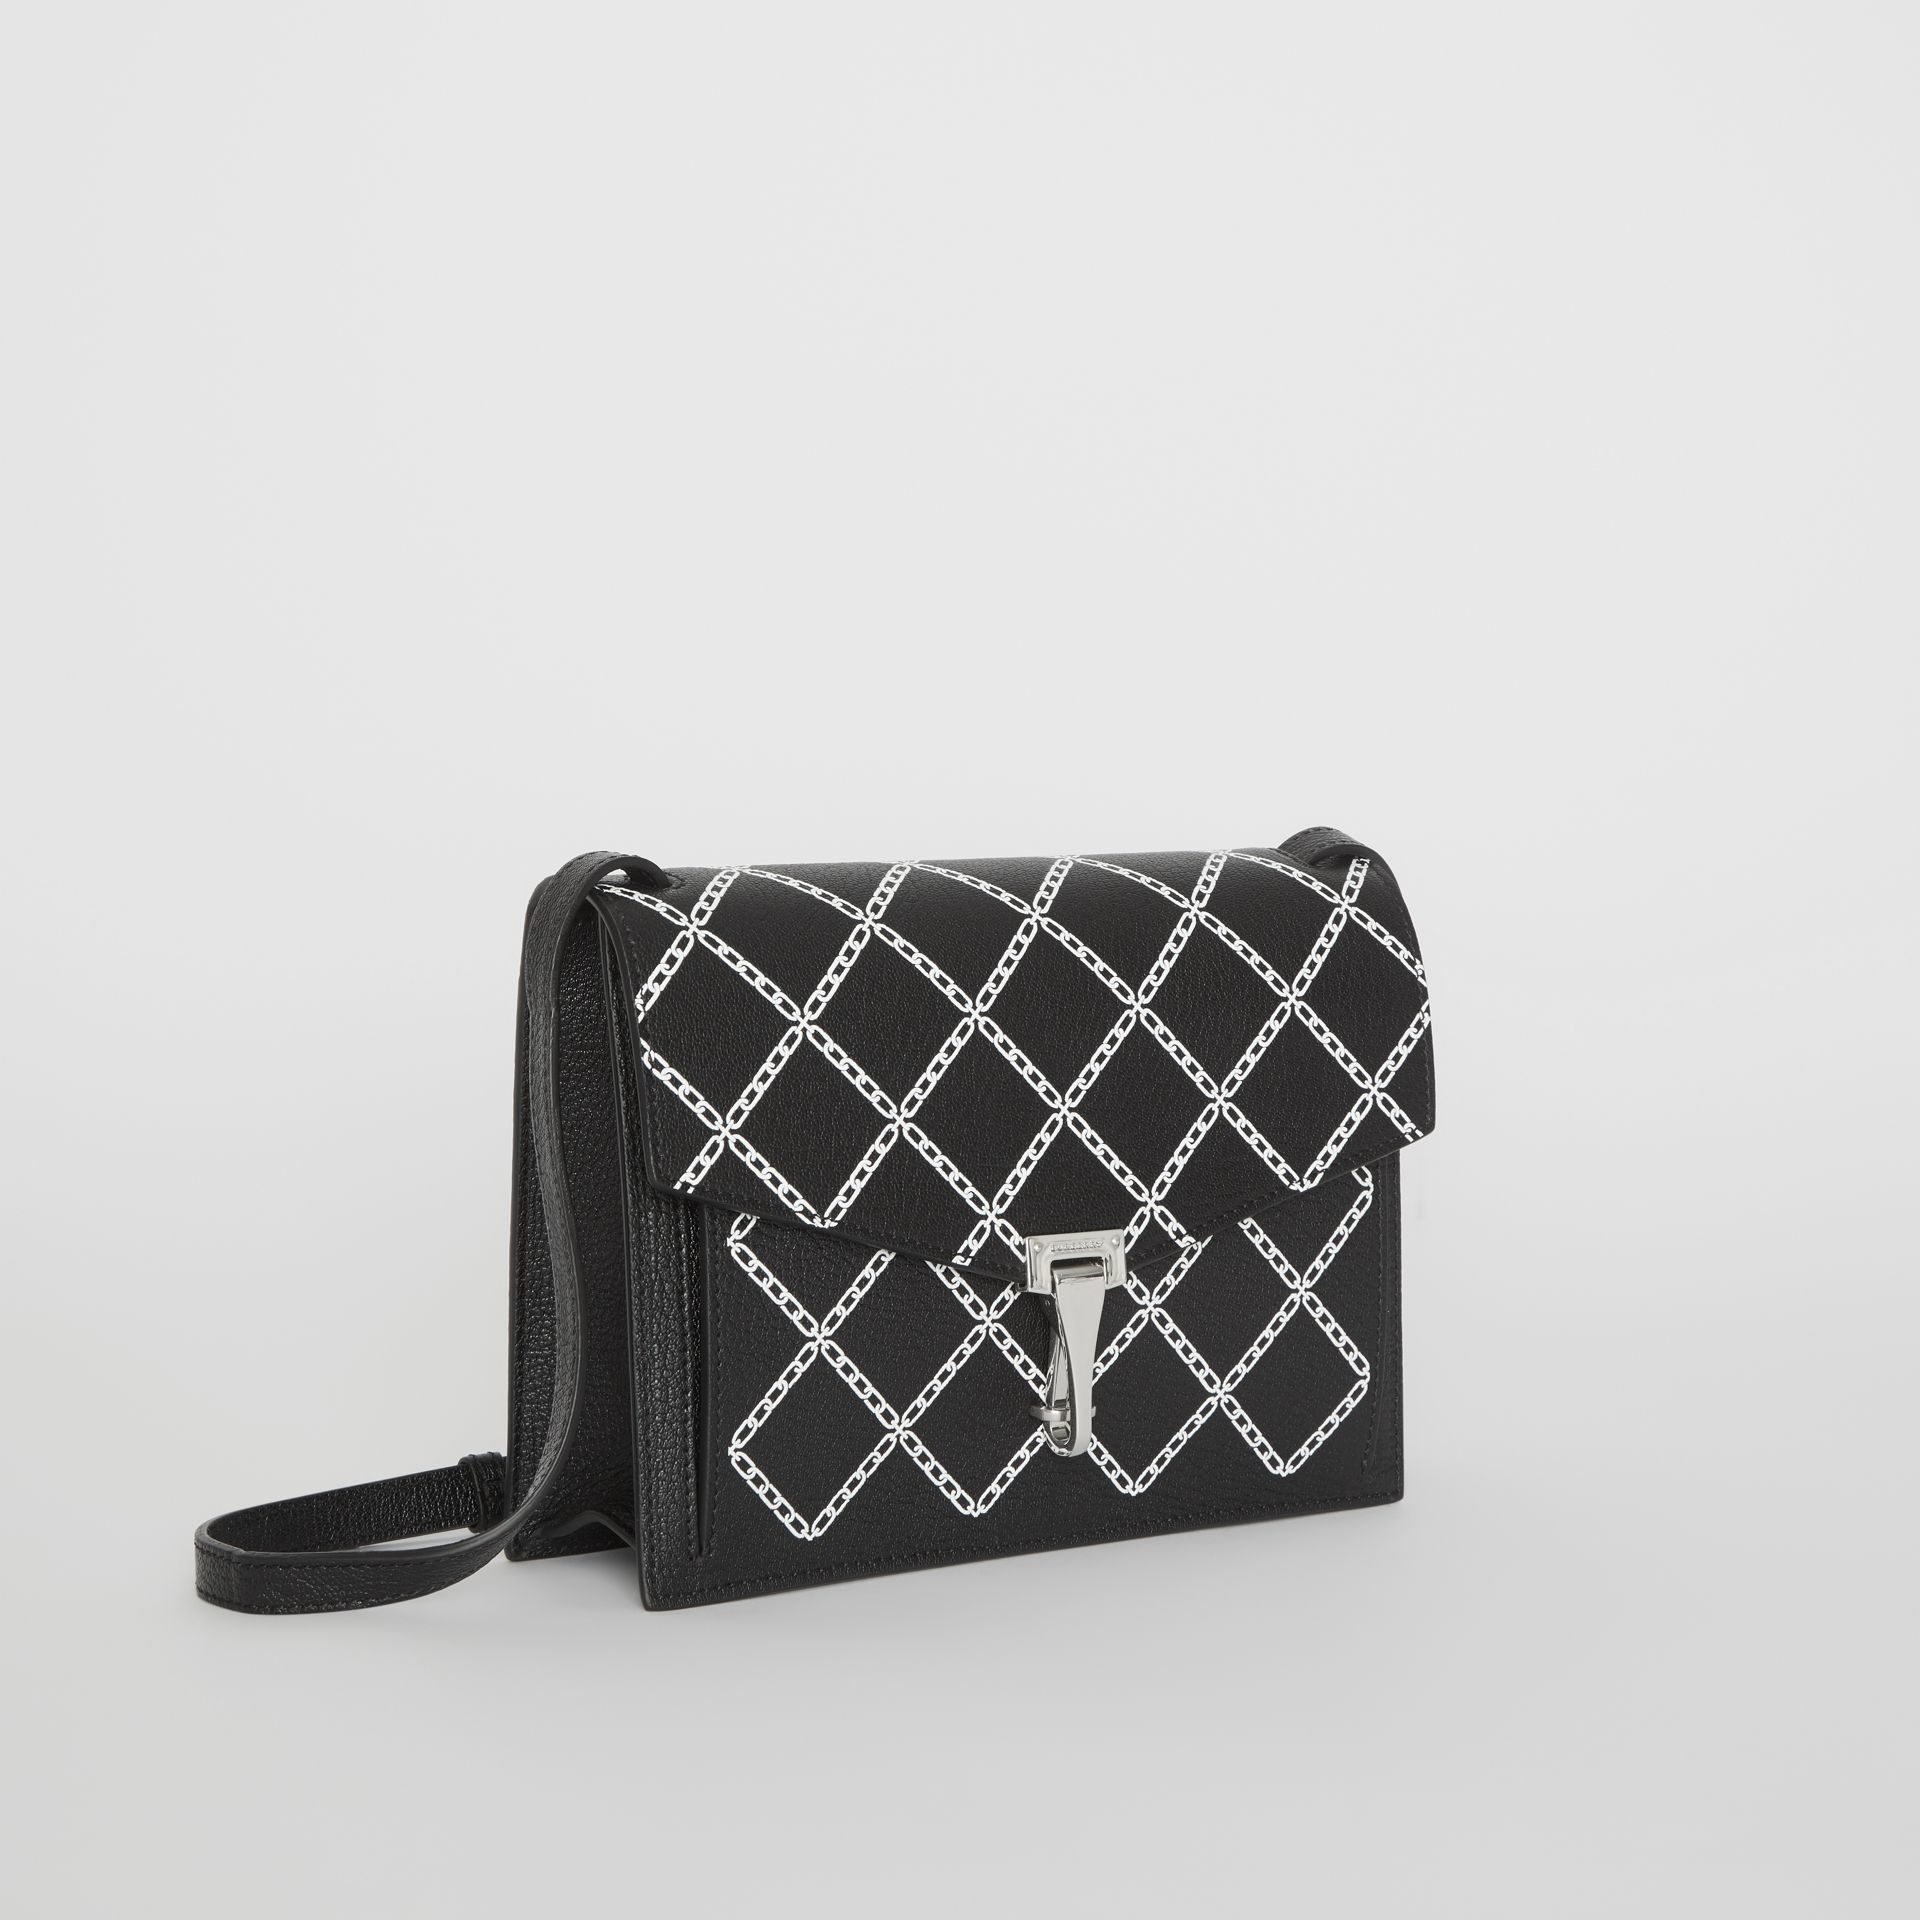 Small Link Print Leather Crossbody Bag in Black - Women | Burberry United Kingdom - gallery image 6